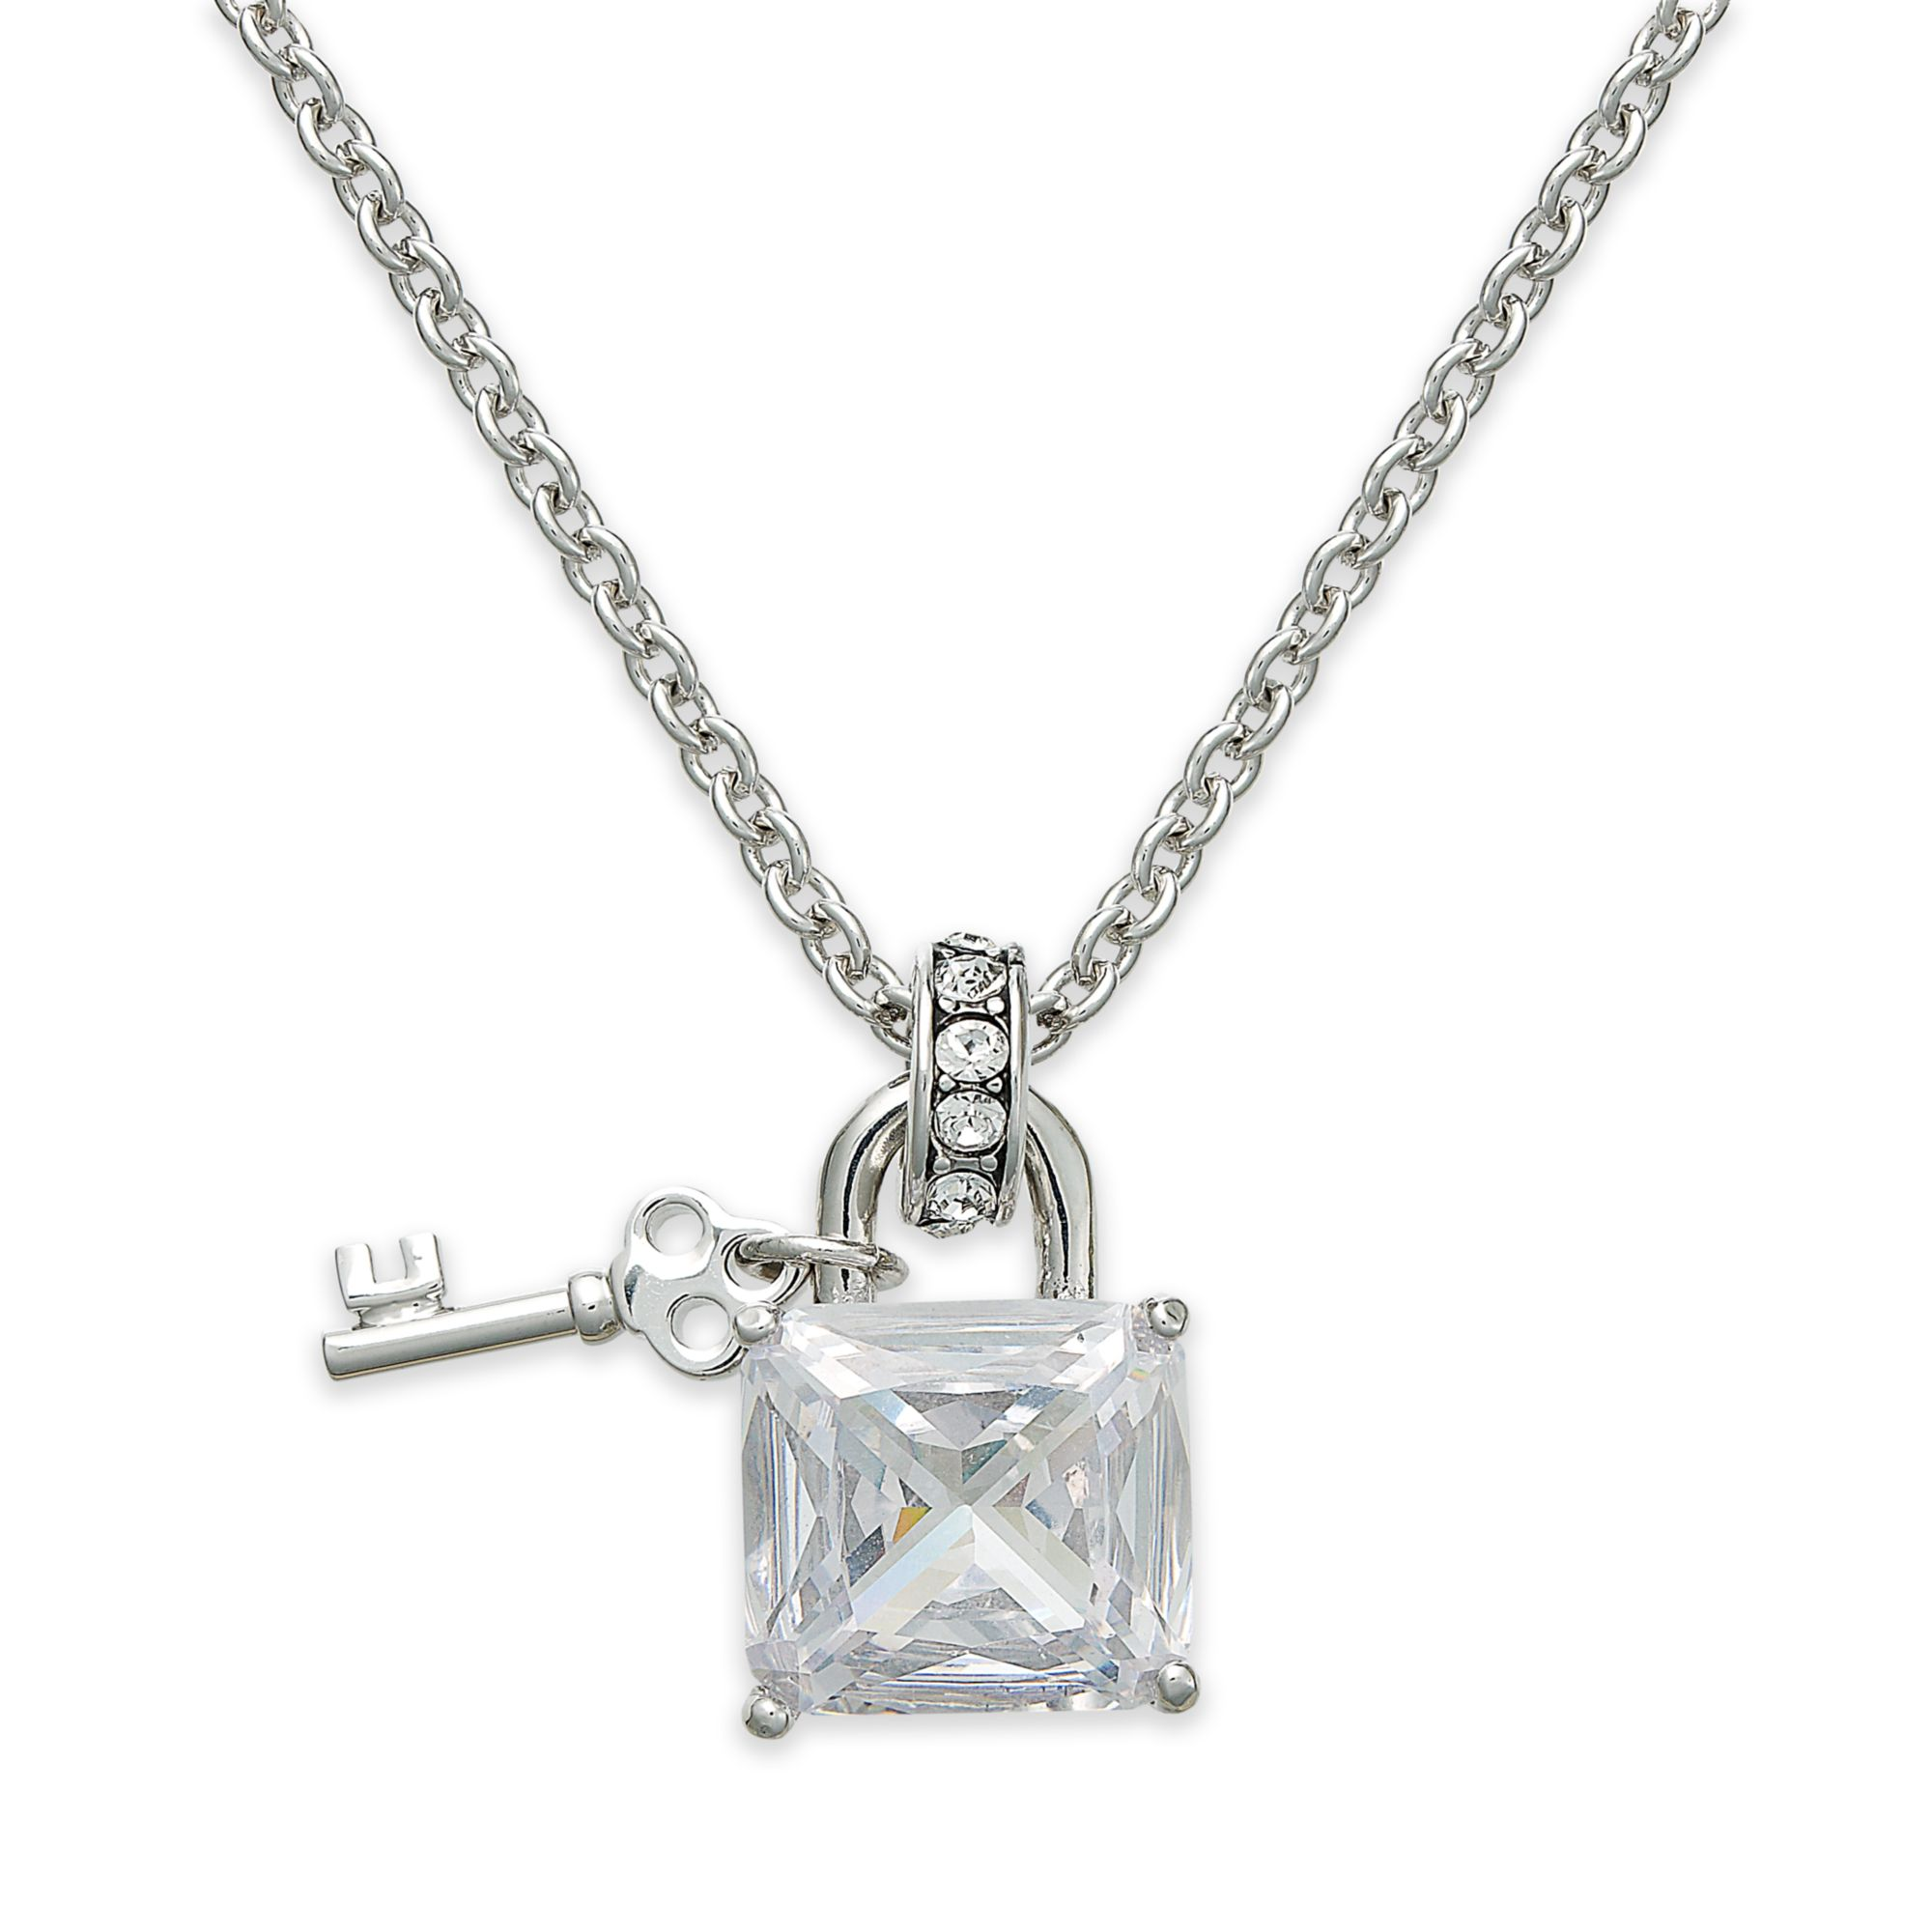 Juicy Couture Silvertone Crystal Padlock Pendant Necklace